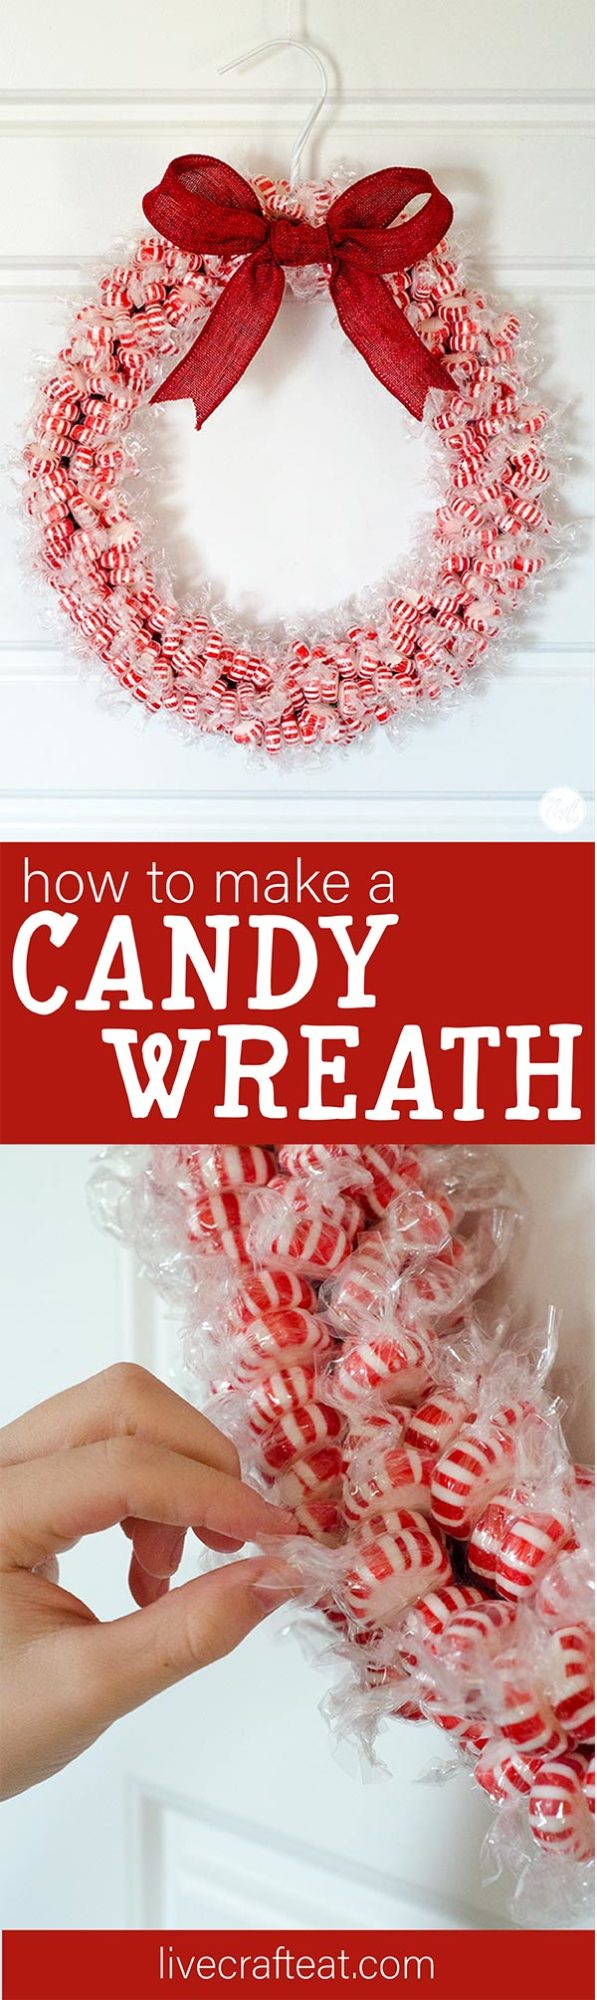 how to make a wreath out of candy